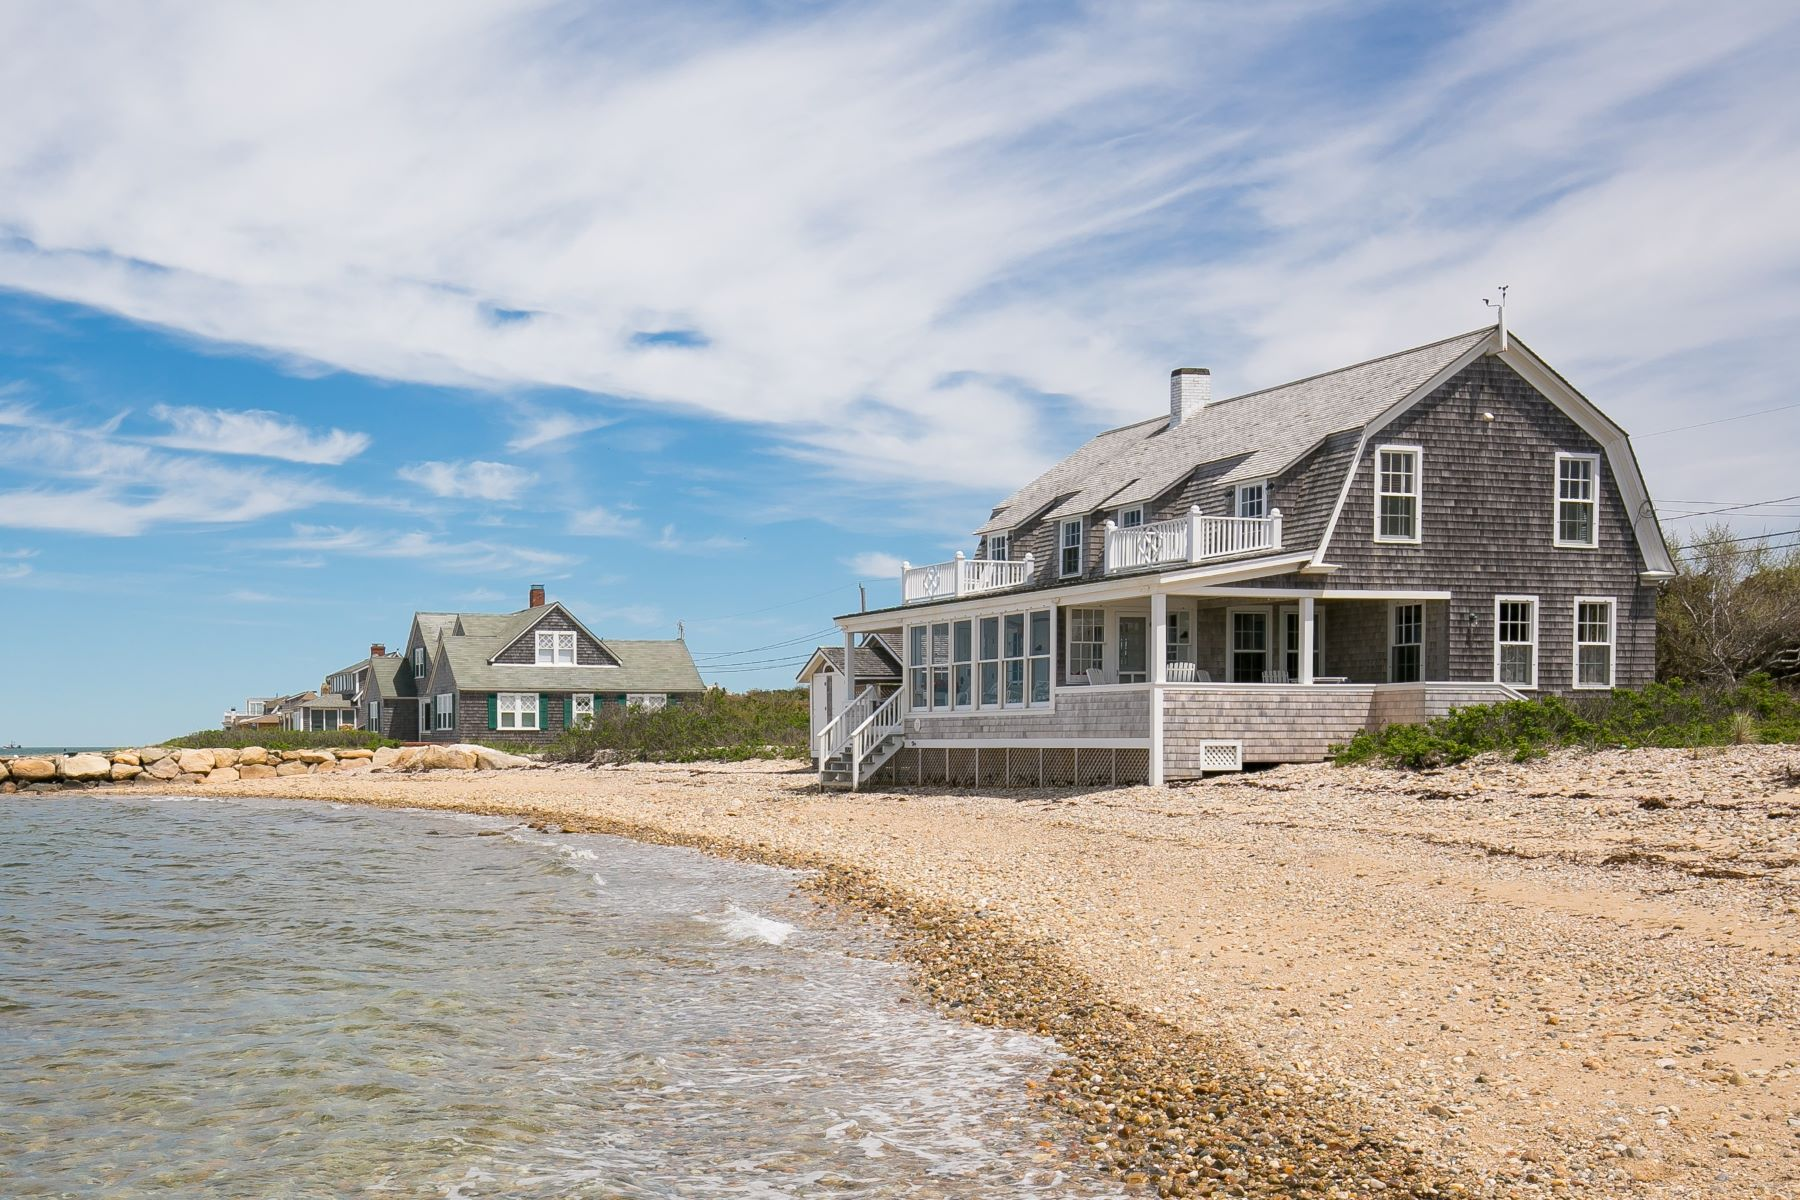 Single Family Home for Sale at Waterfront East Chop Beach House 325 East Chop Drive Oak Bluffs, Massachusetts 02557 United States